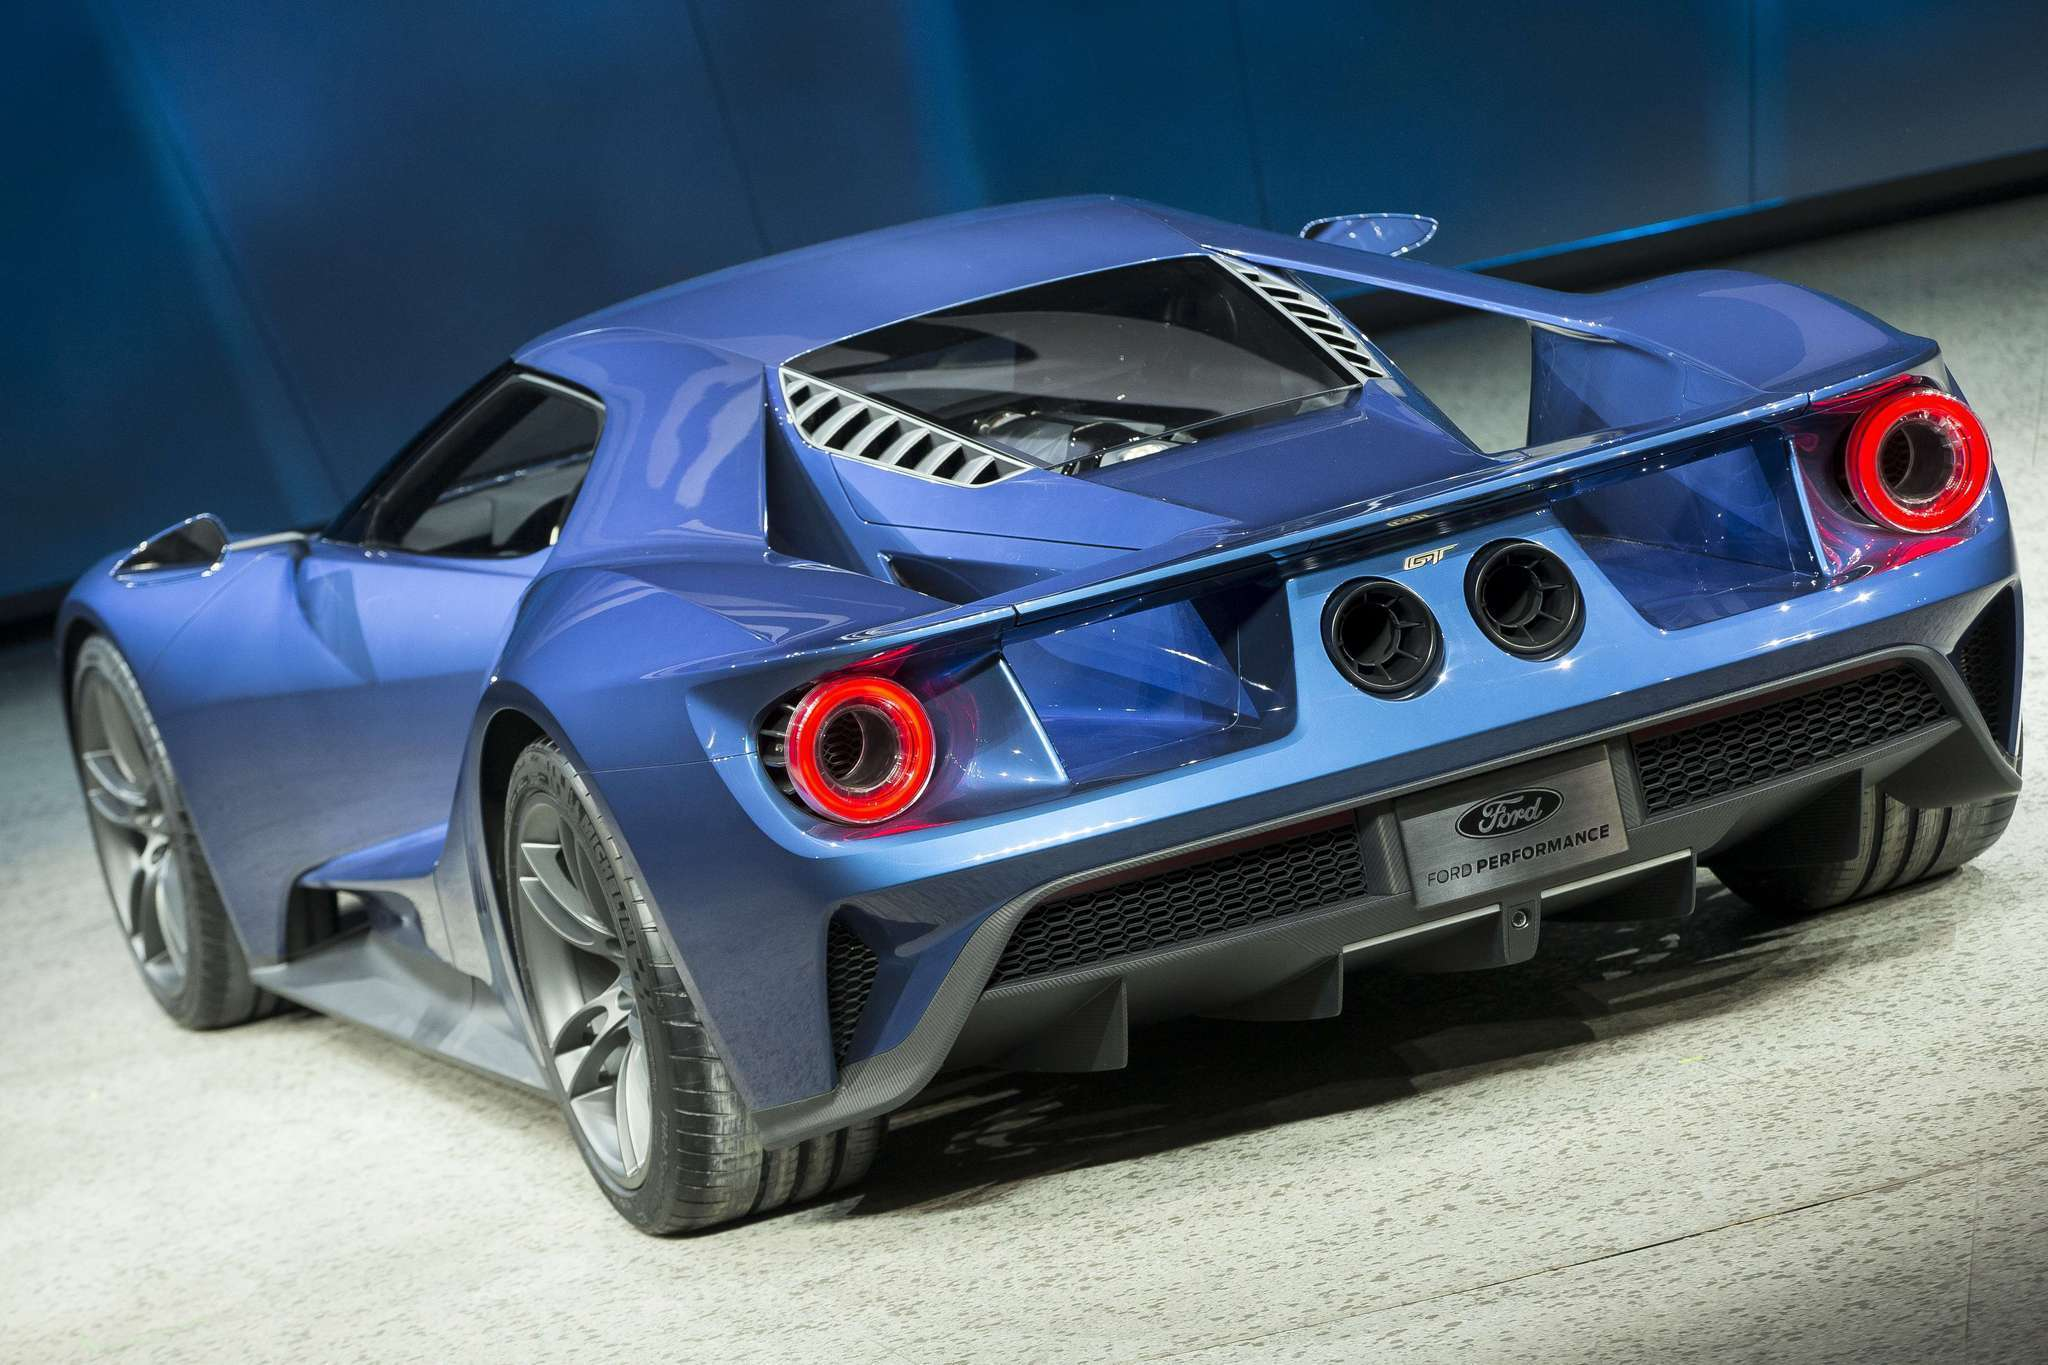 ford brings gt supercar to 2015 chicago auto show chicago tribune - 2015 Ford Gt Auto Show